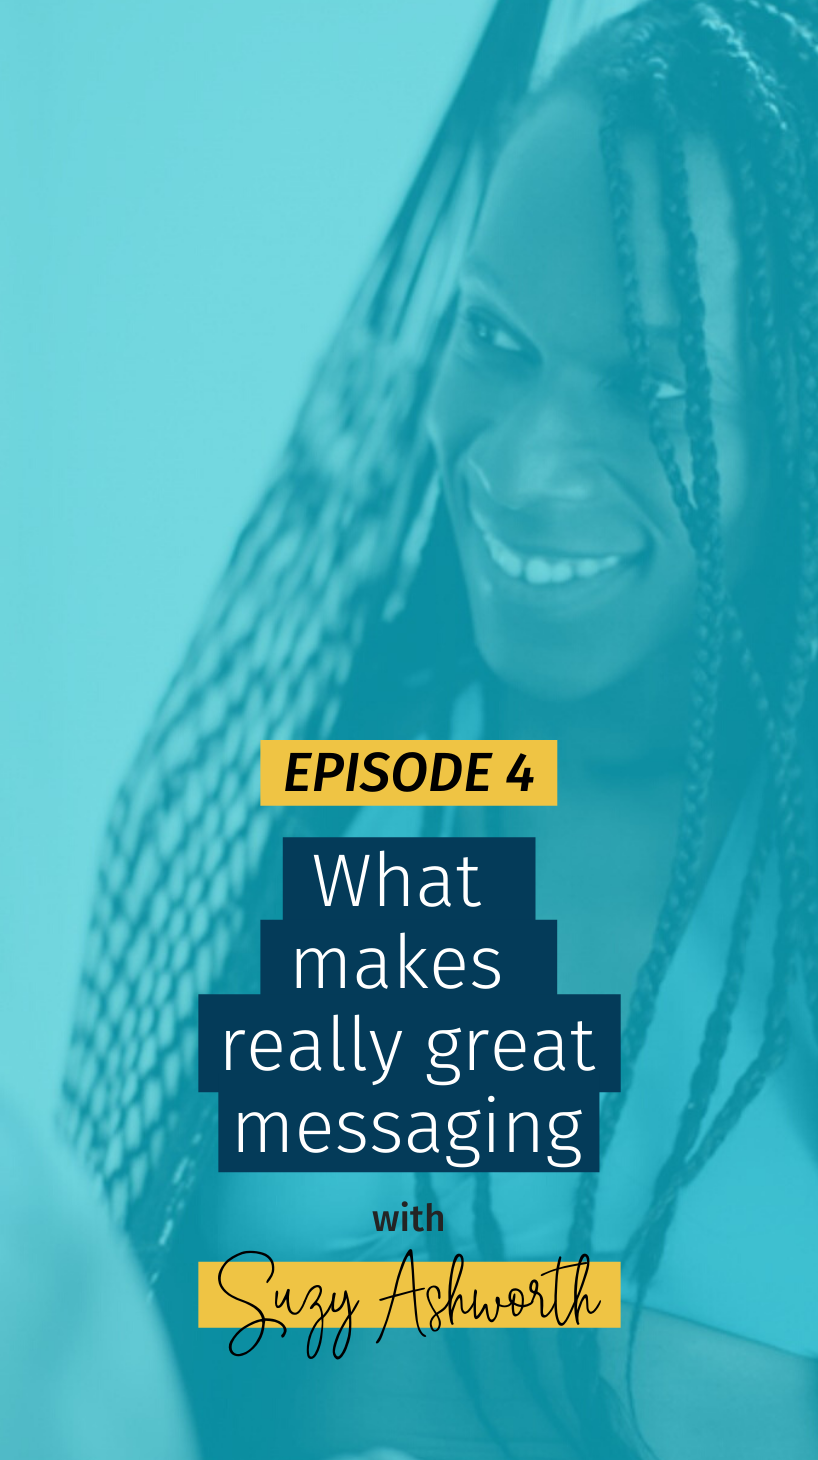 004 What makes really great messaging